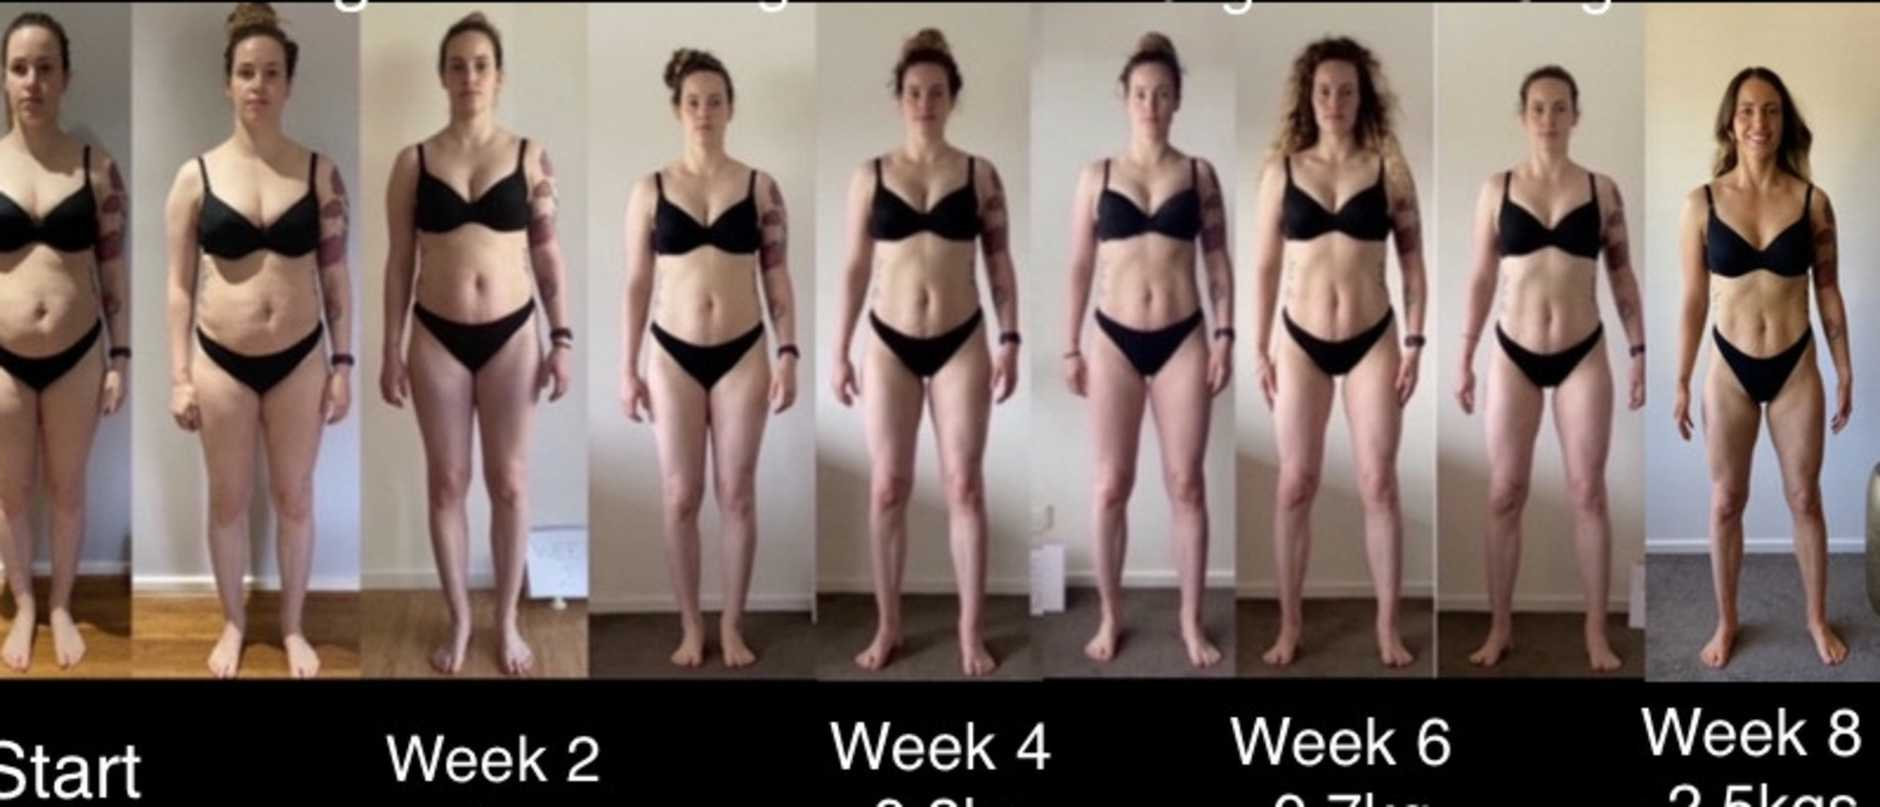 Tamsin Macaffer's epic transformation over eight weeks. Picture: Supplied